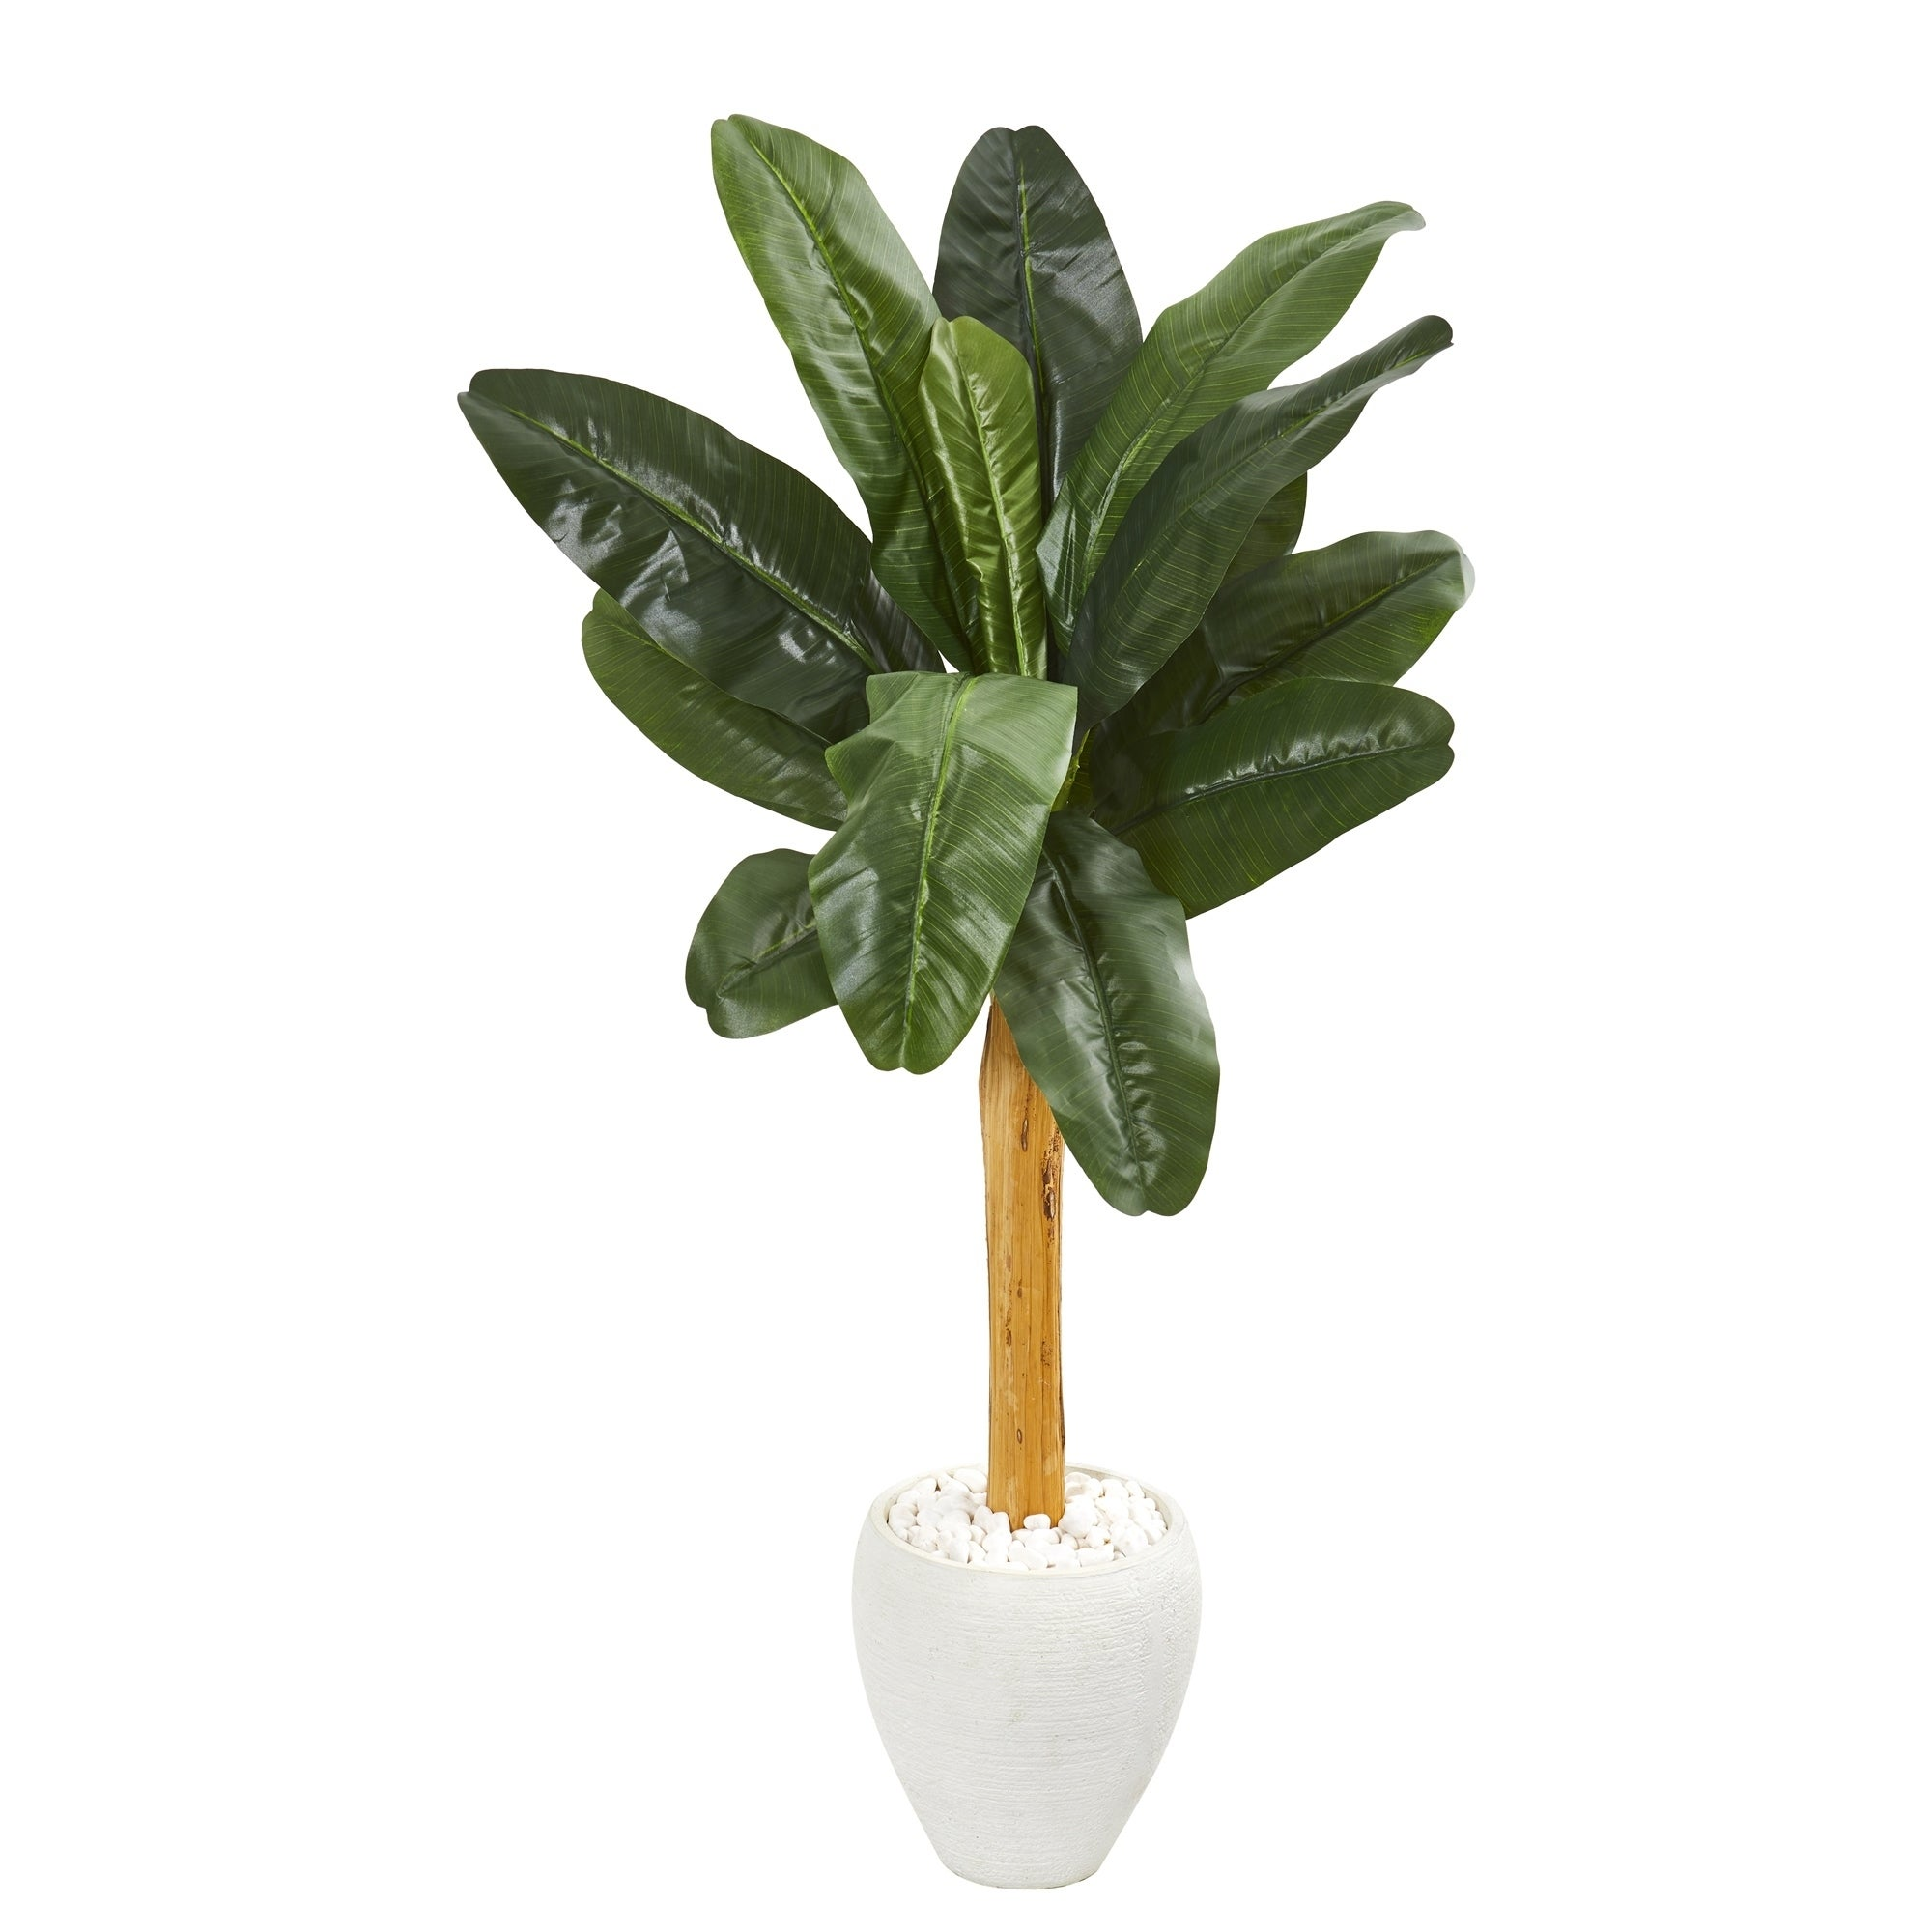 57 Banana Artificial Tree in White Planter